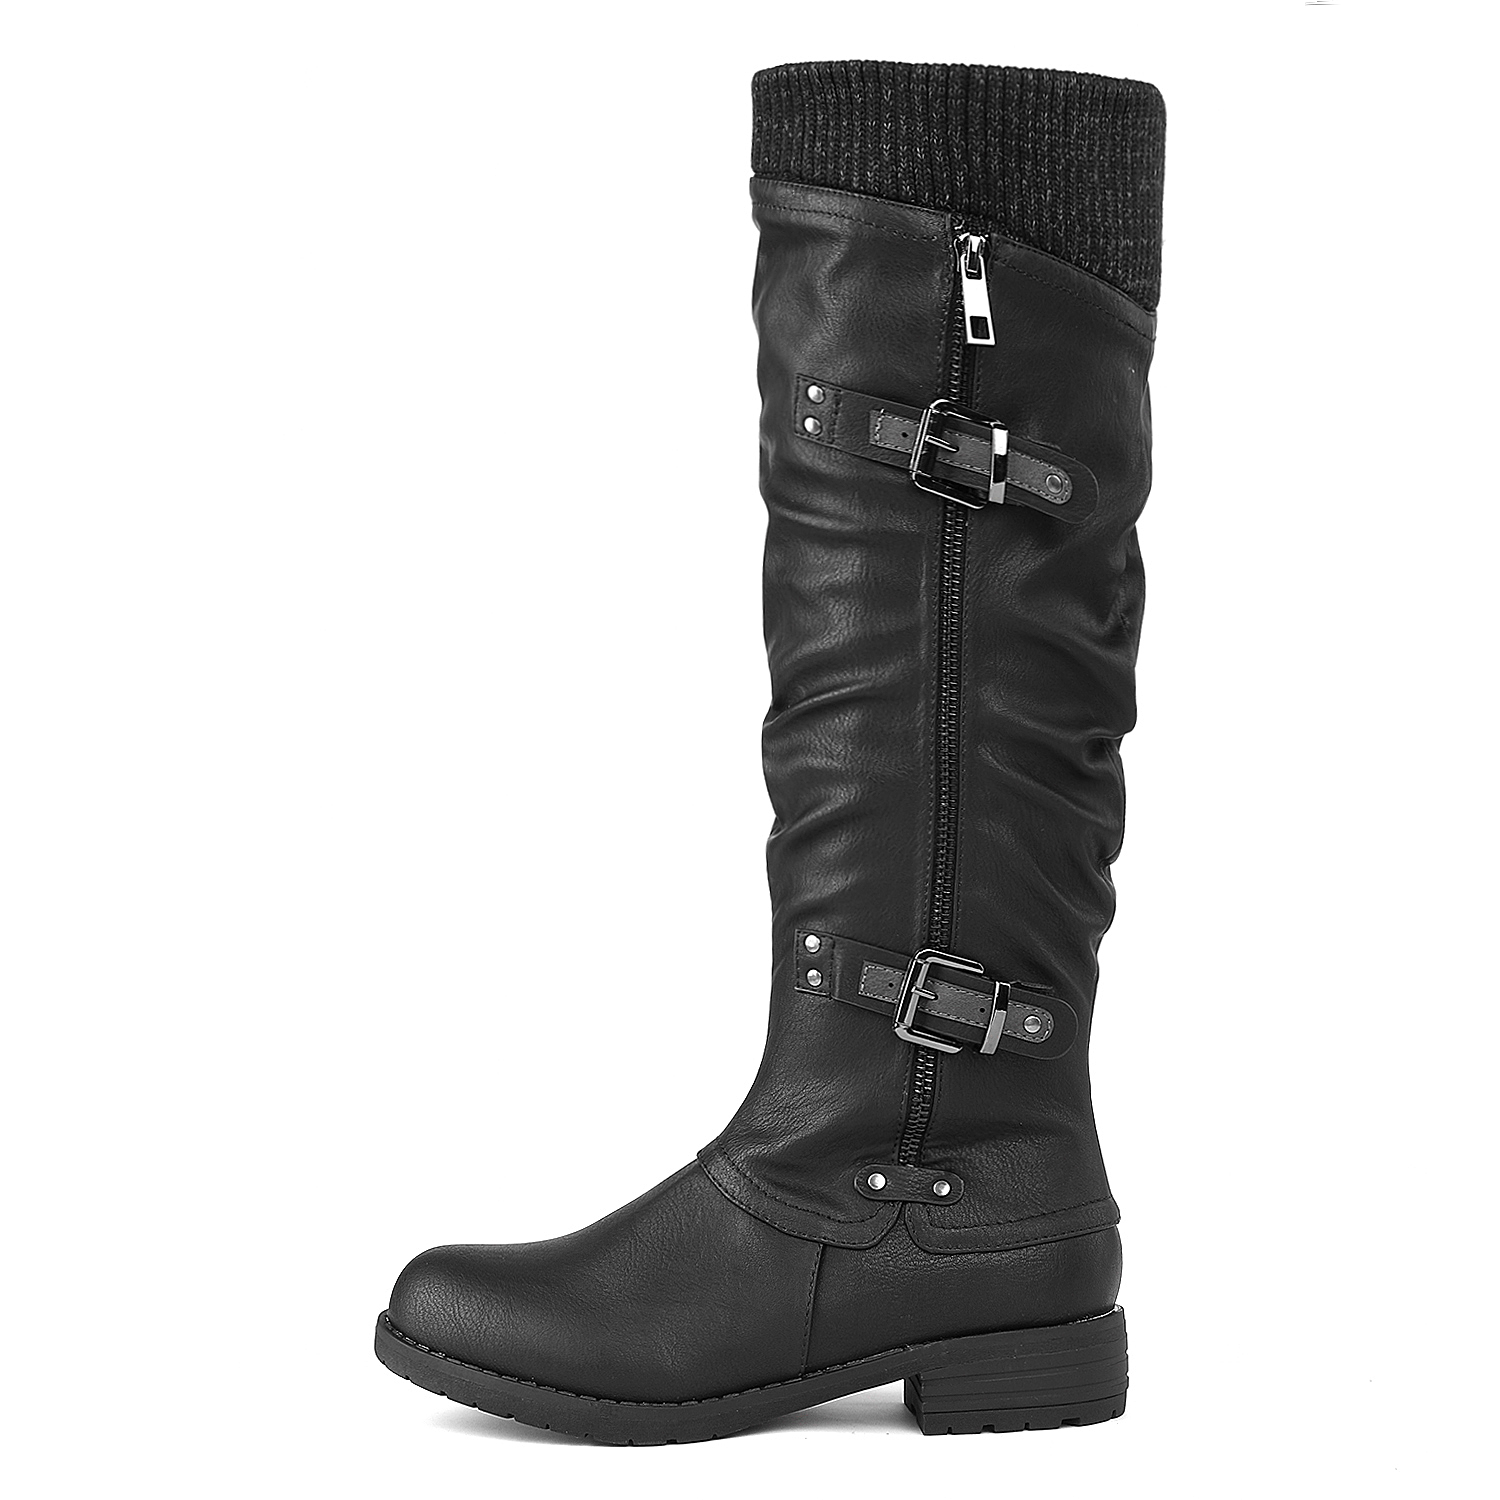 DREAM-PAIRS-Womens-DEPP-Cowgirl-Soft-PU-Leather-Combat-Knee-High-Riding-Boots thumbnail 6